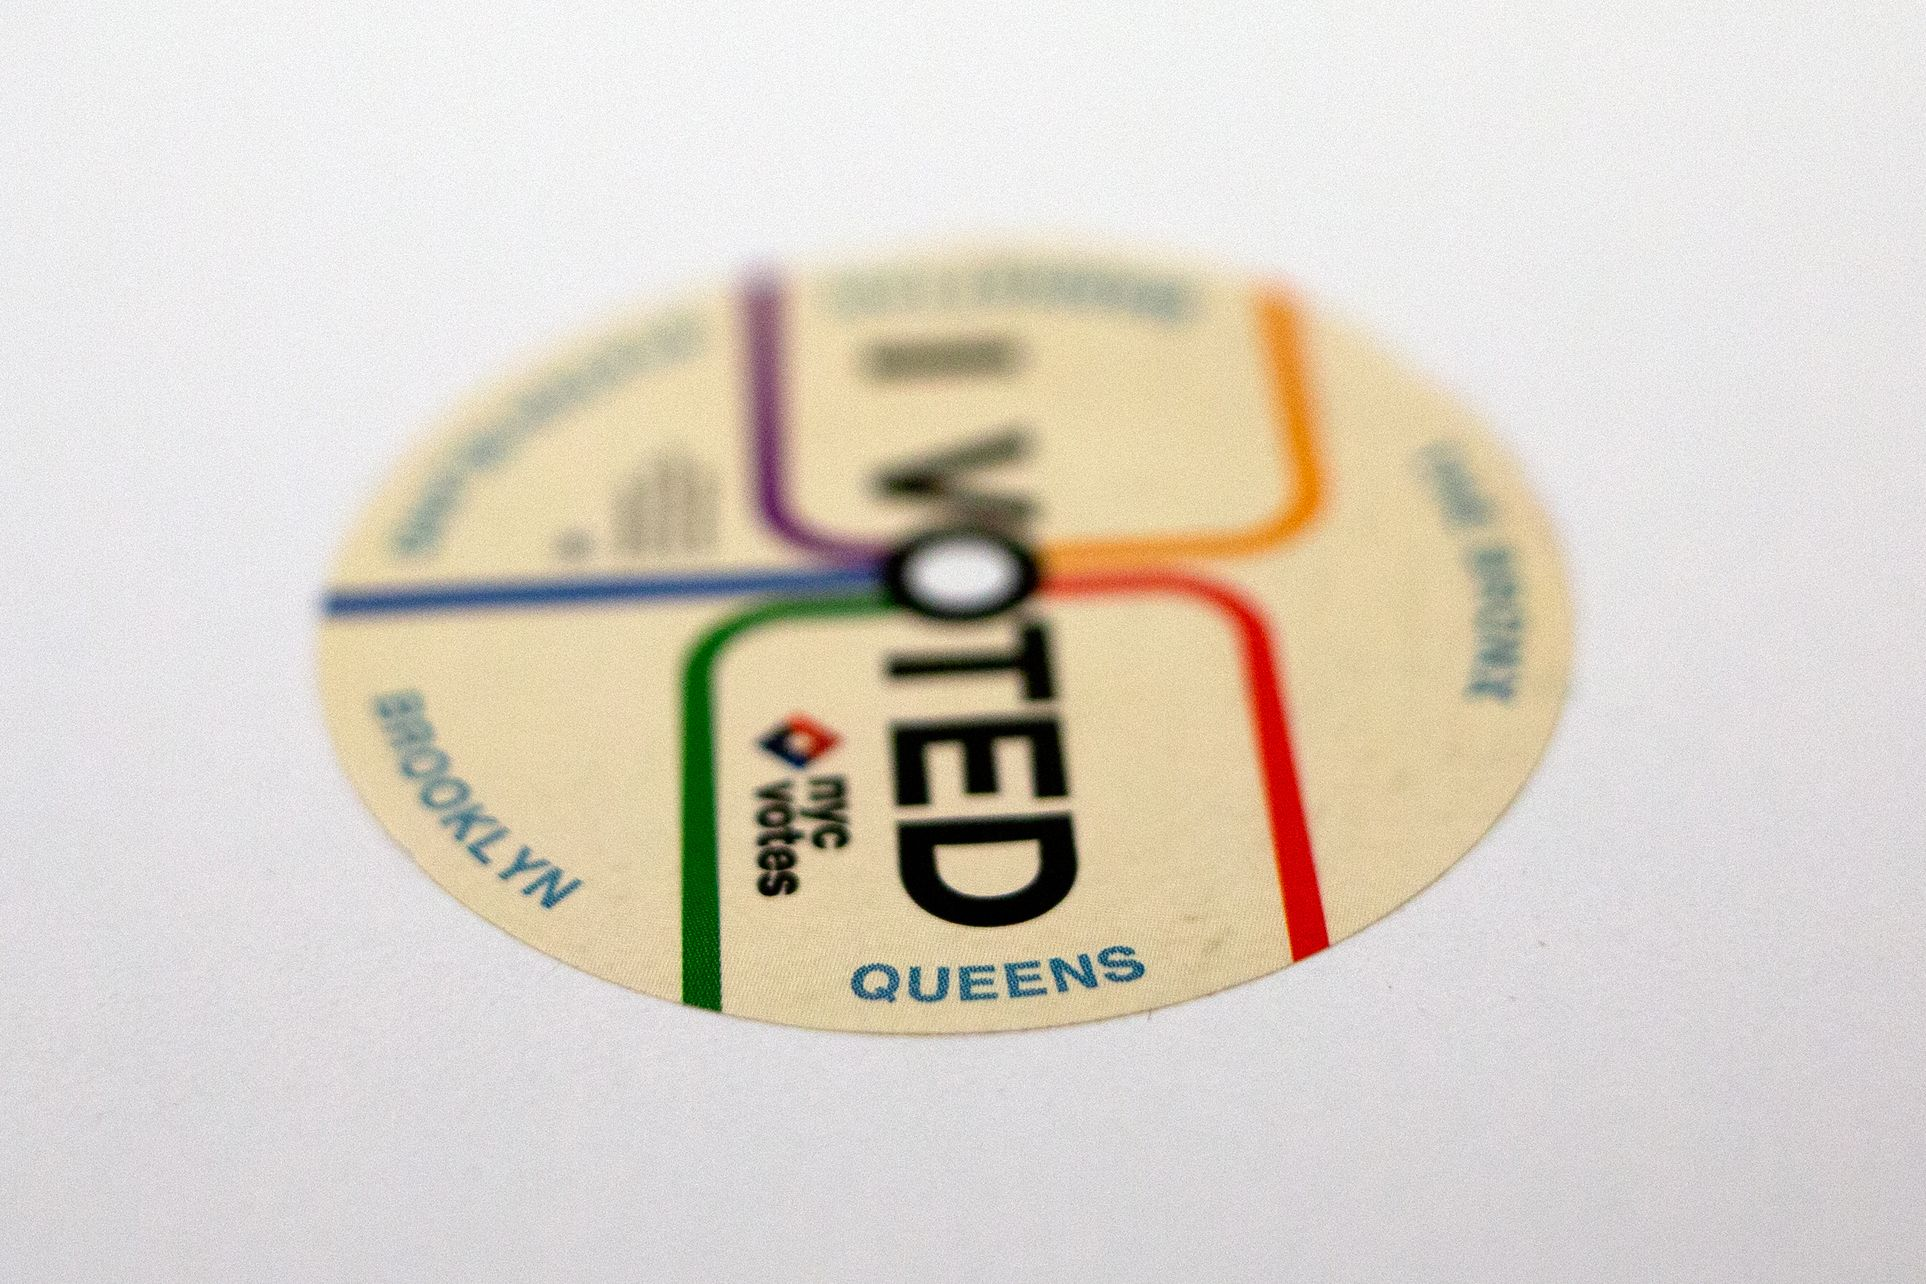 Queens residents are set to vote for borough president on March 24.